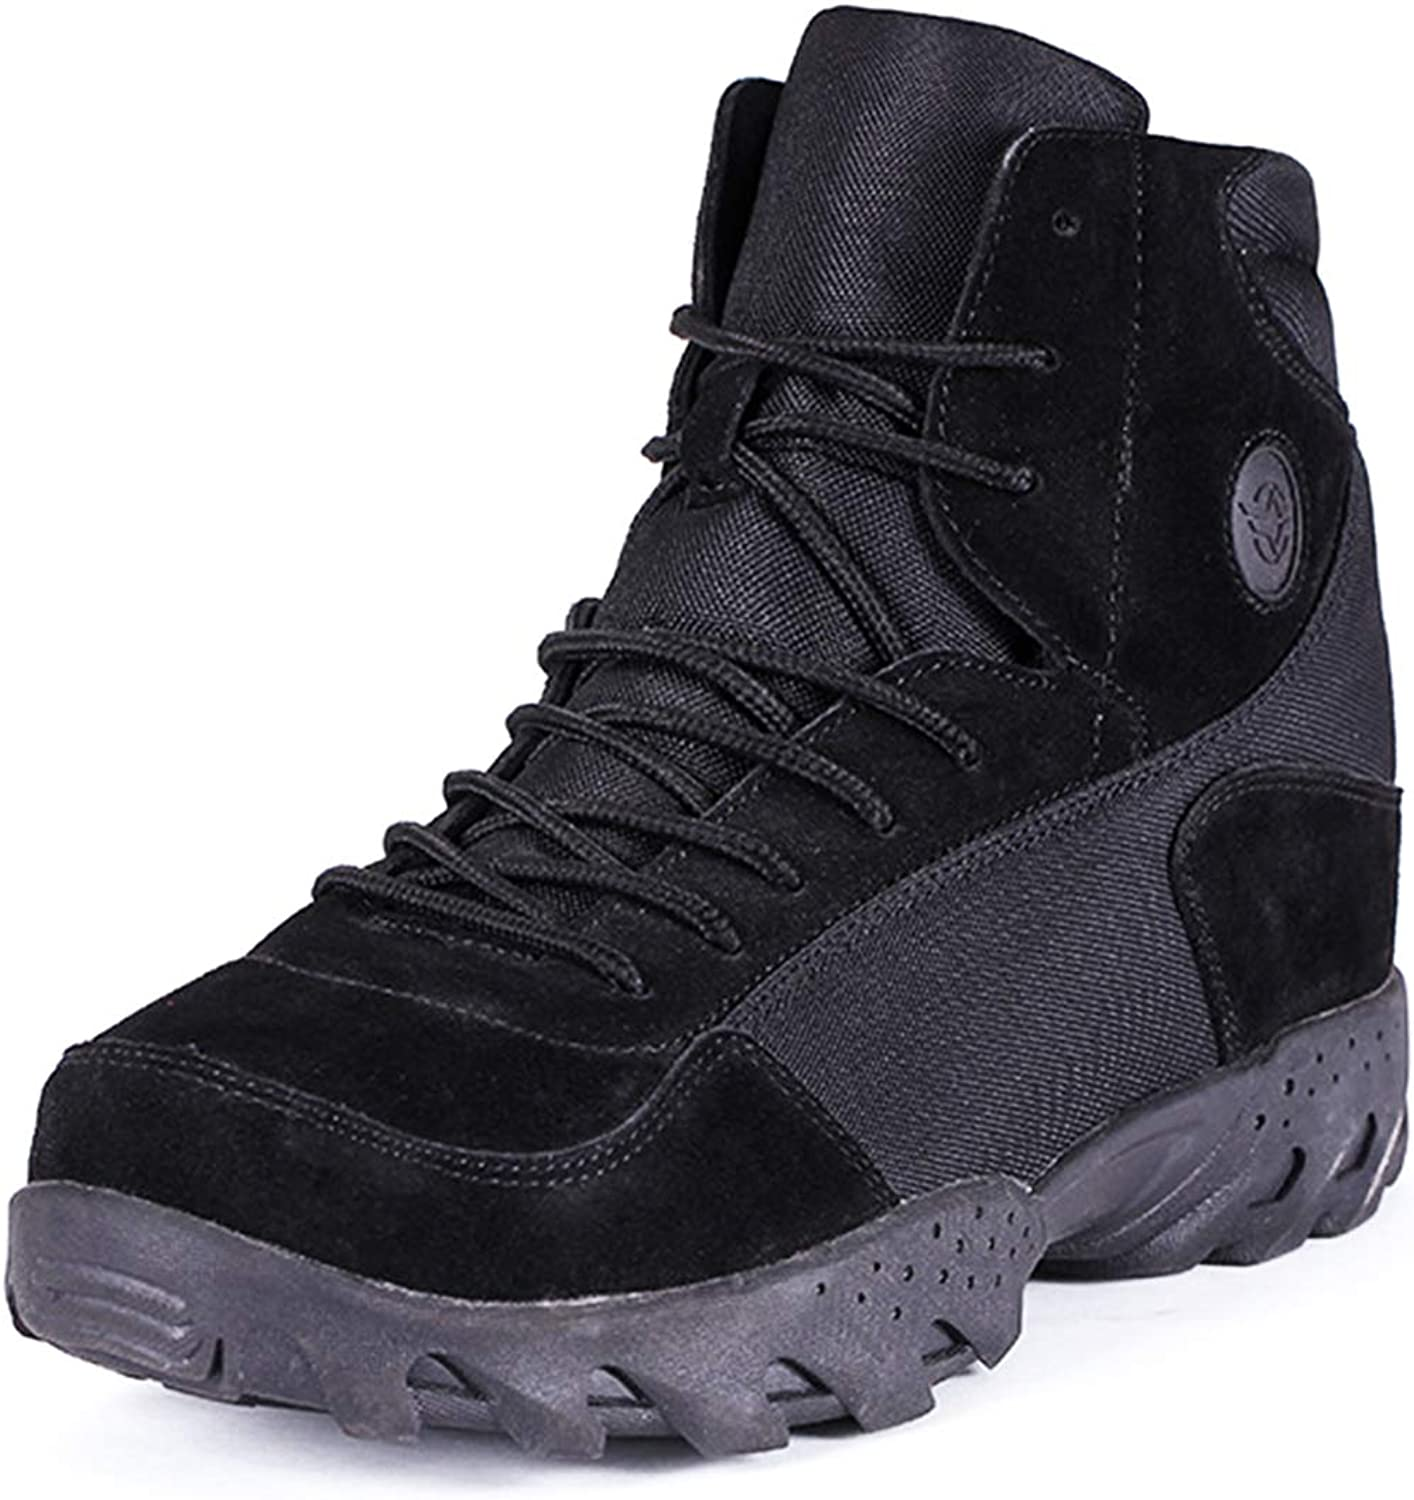 Outdoor high-top Combat Boots, Non-Slip wear, Second Hiking shoes, Tactical Boots